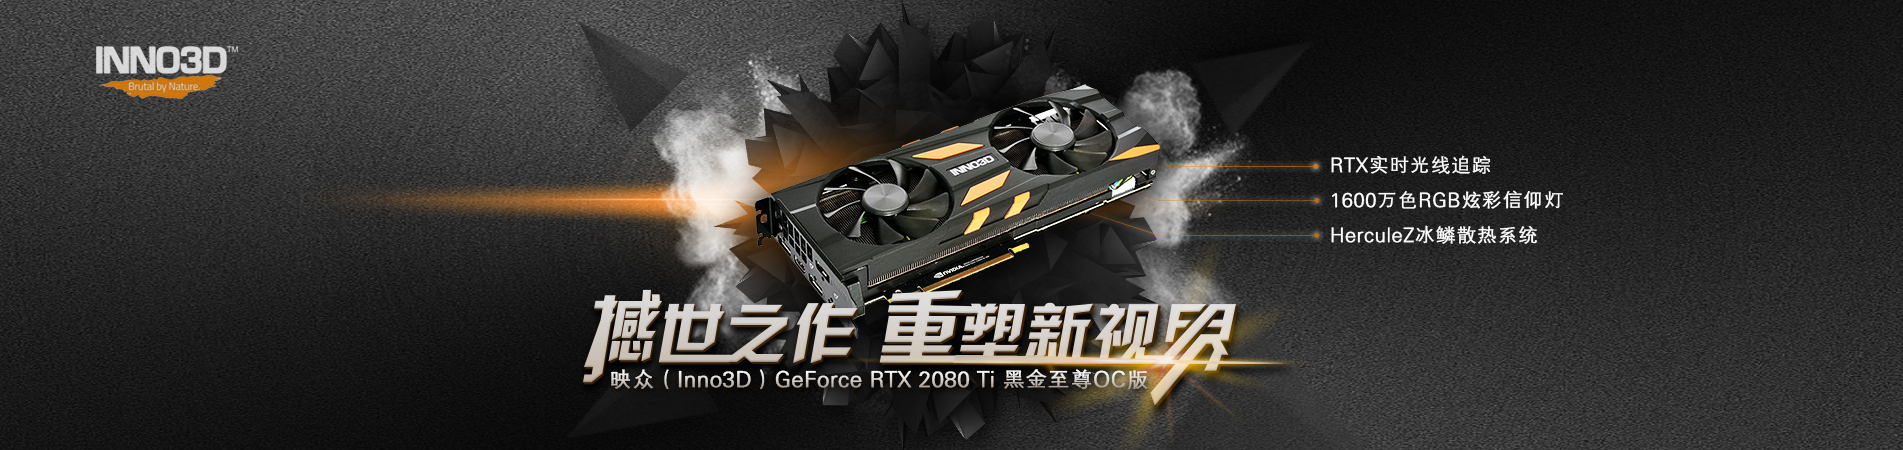 映众(Inno3D)GeForce RTX 2080 Ti 黑金至尊OC版 11GB GDDR6 PCI-E吃鸡显卡/游